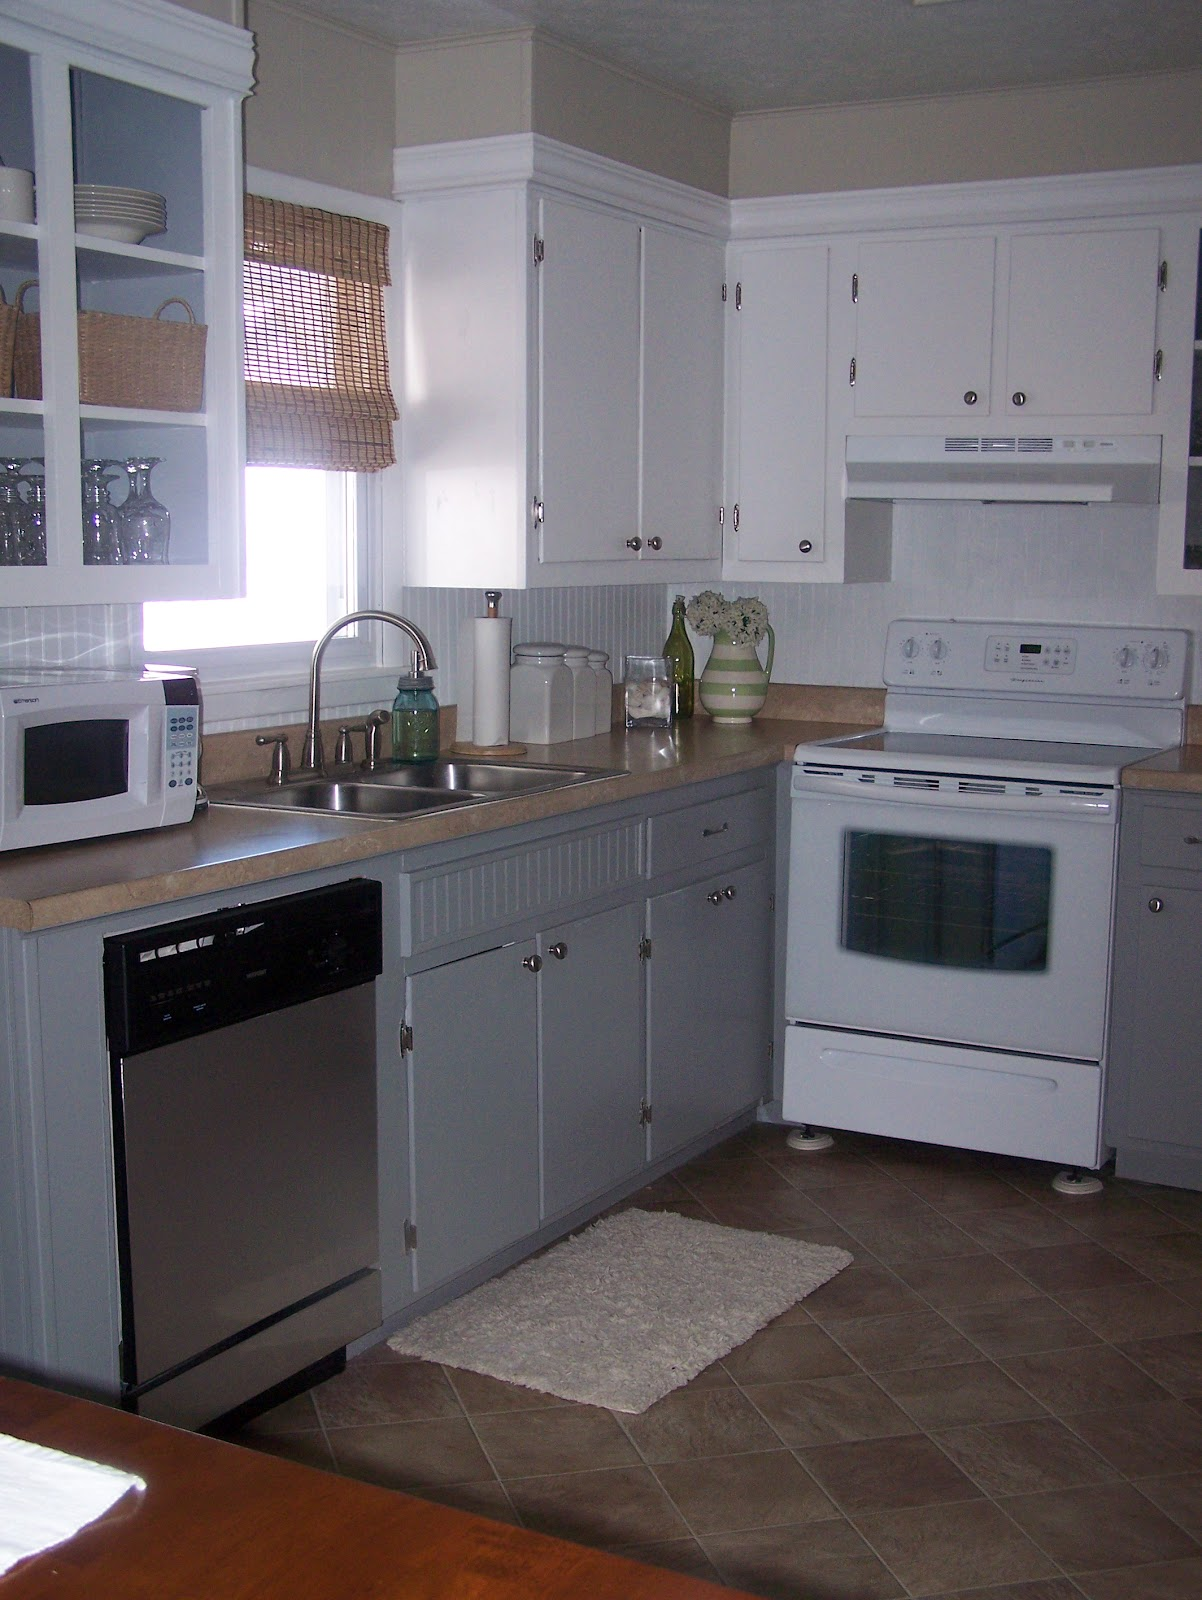 Updating old kitchen cabinets image to u for Updating a kitchen